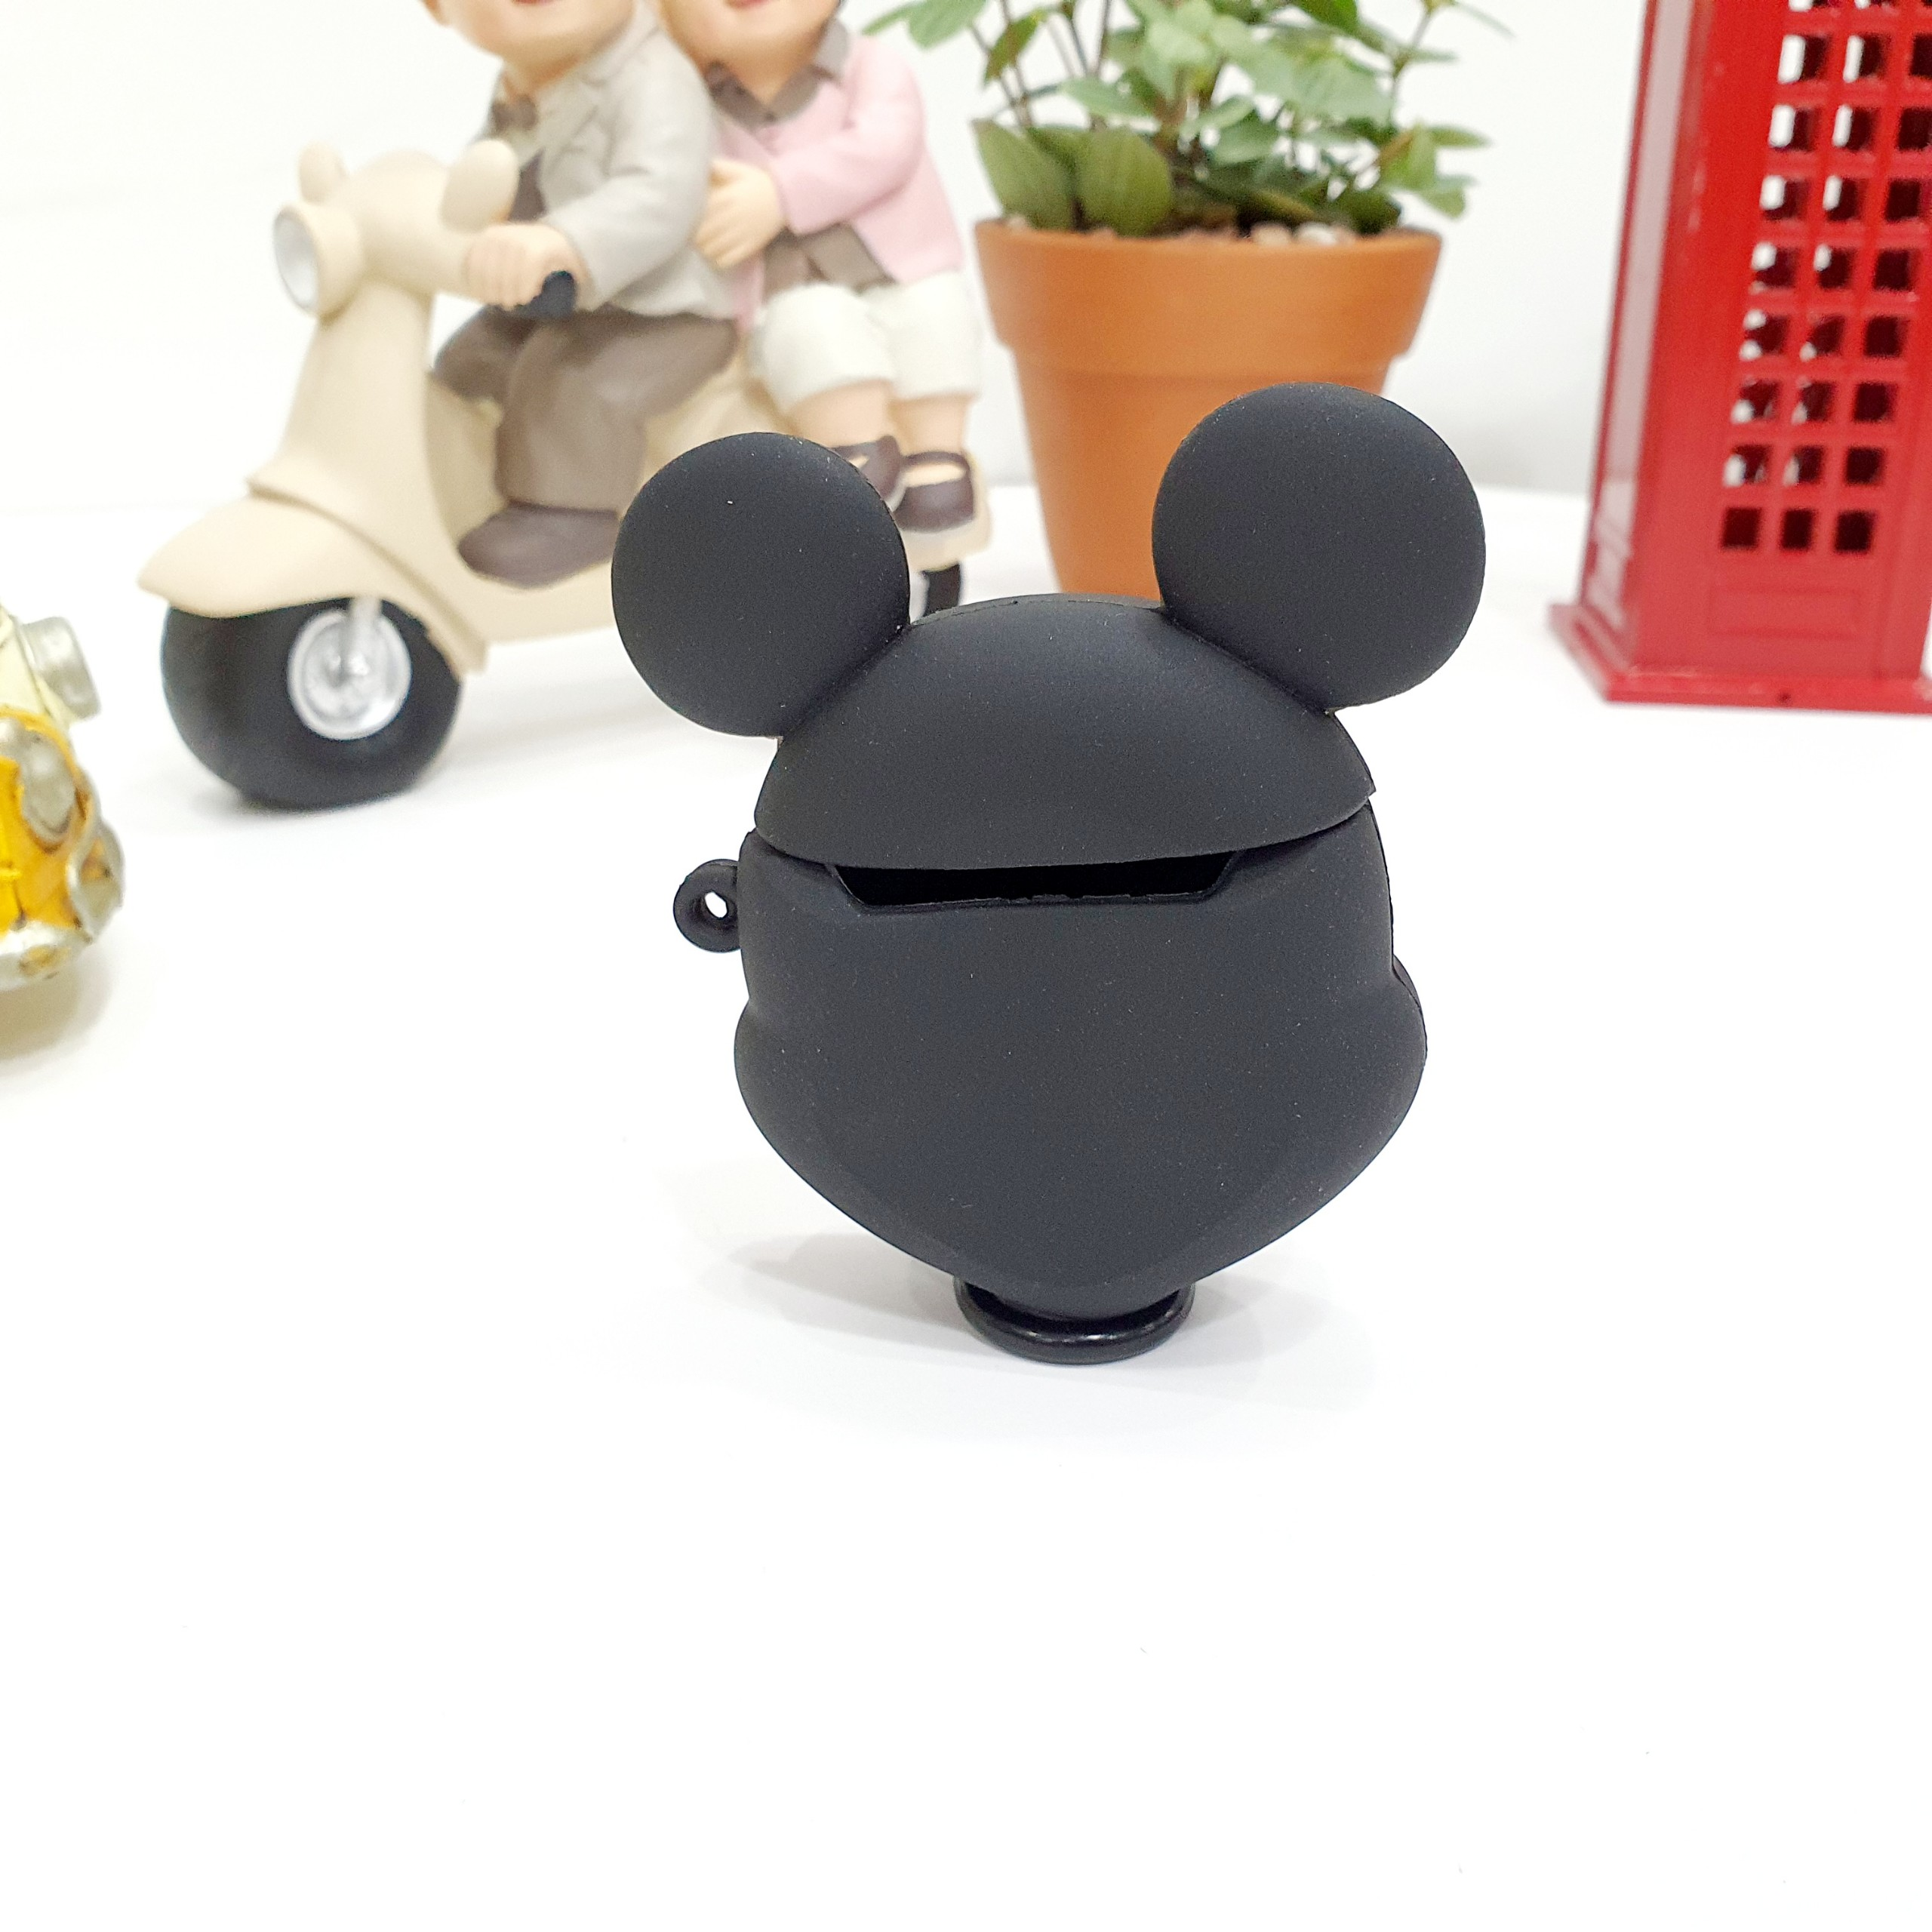 Case Ốp Silicon Bảo Vệ Cho Apple AirPods / AirPods 2 - Chuột Mickey